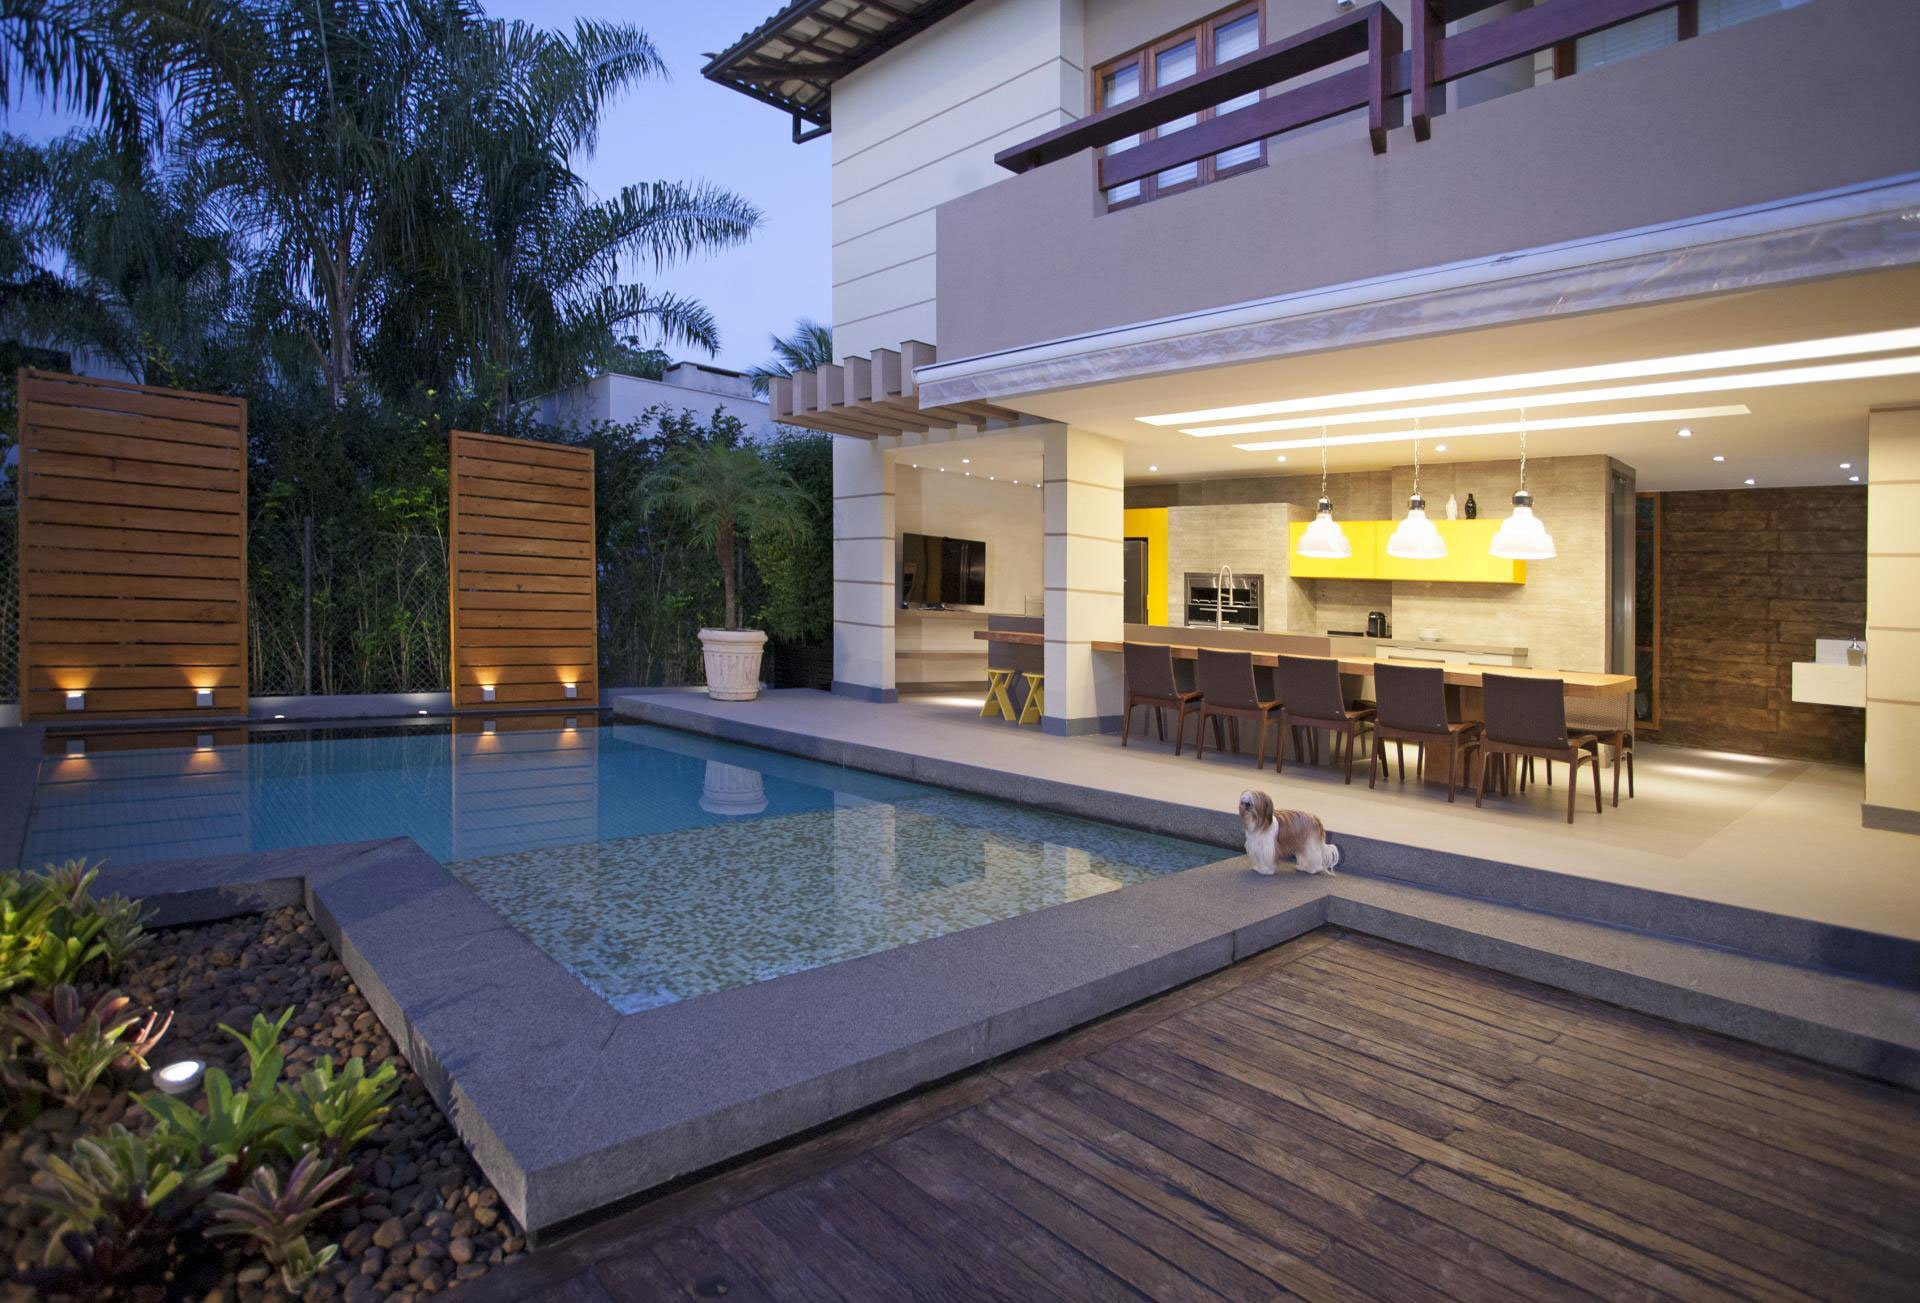 Ubhouse by paula martins arquitetura interiores for How to design a pool